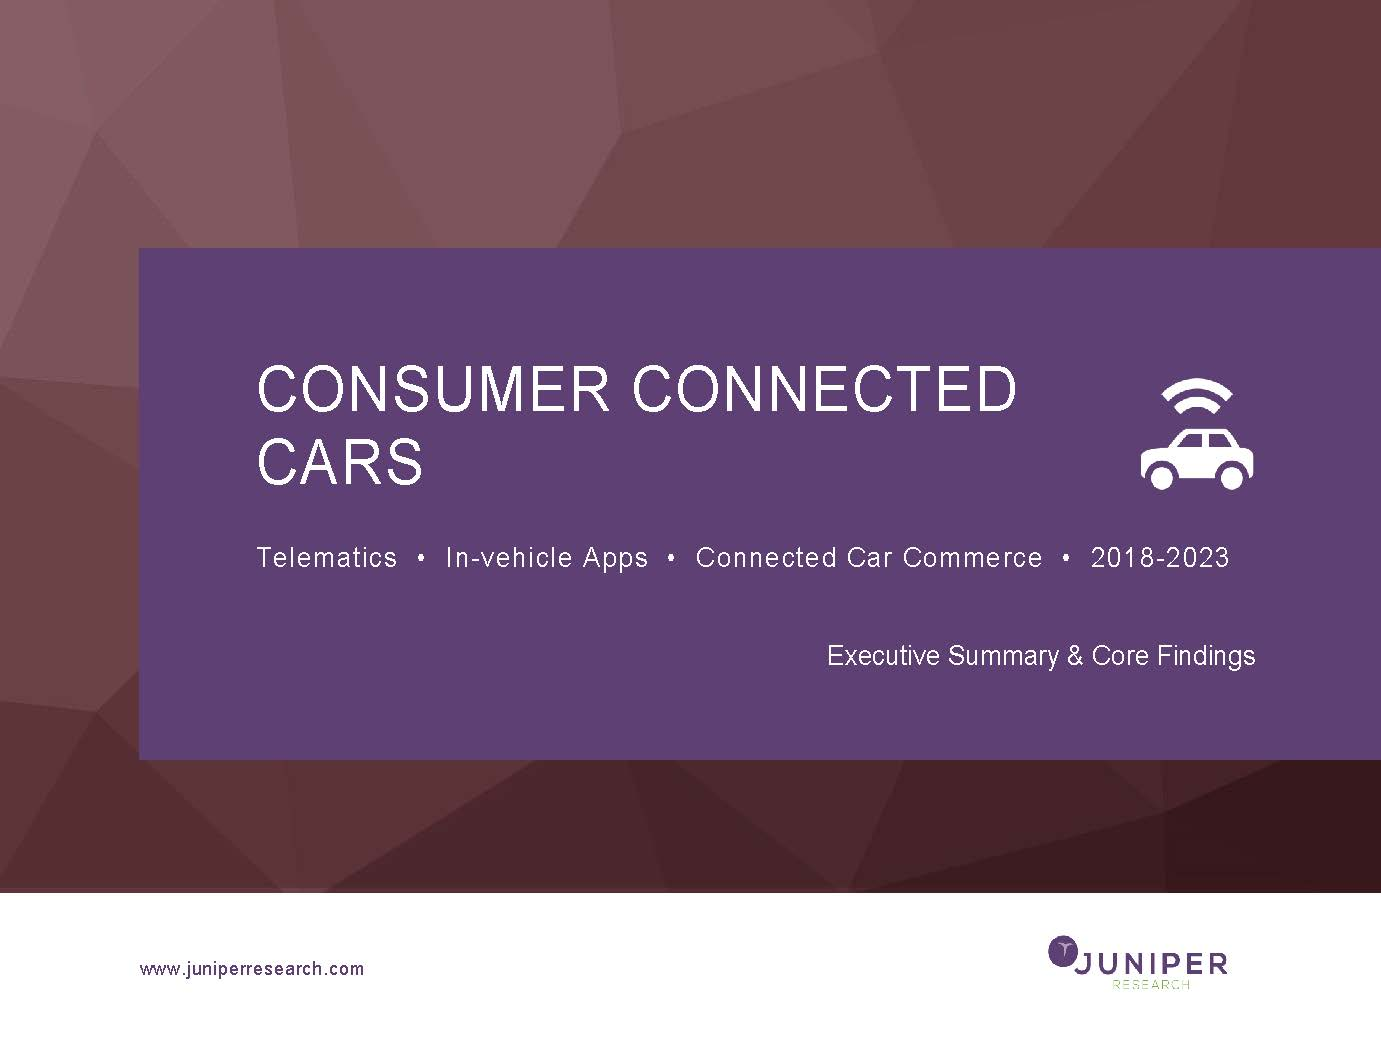 Consumer Connected Cars: Executive Summary 2018-2023